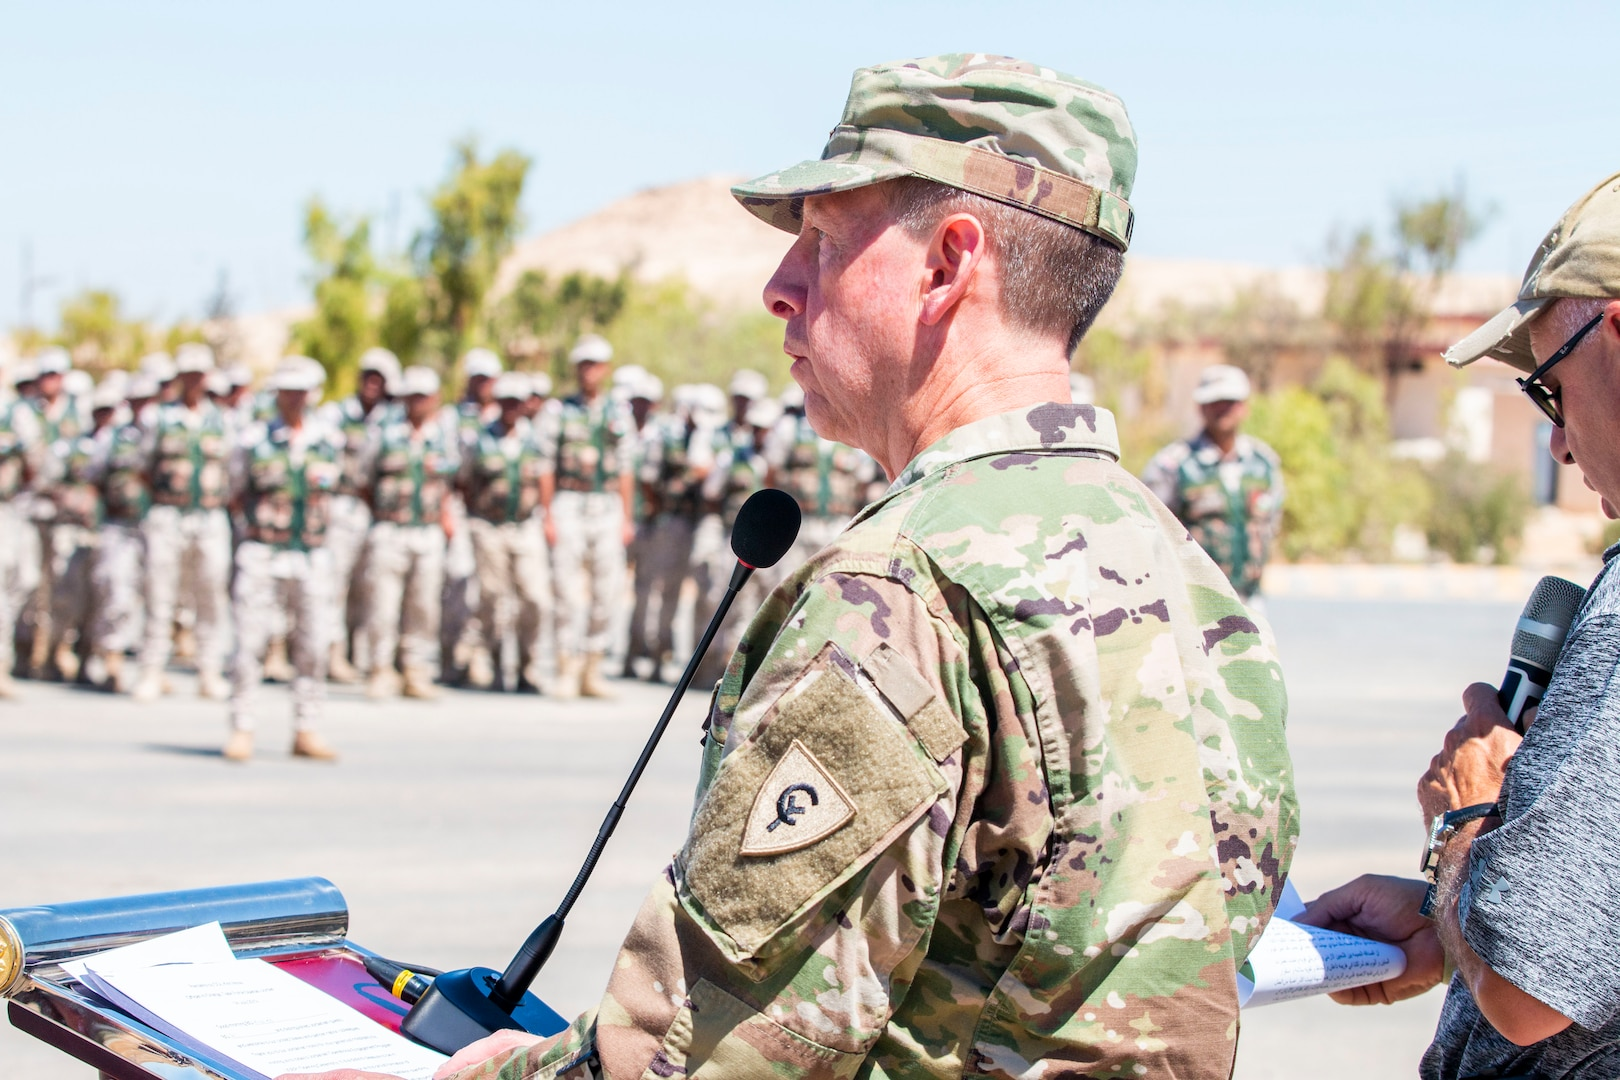 U.S. Army Col. Kirk White, senior Army leader of Jordan, speaks to New Jersey National Guard Soldiers, with 1st Squadron, 102nd Calvary Regiment, and Jordan Border Guard Force Soldiers, with the 7th Mechanized Battalion, 48th Mechanized Brigade, on behalf of Task Force Spartan-Jordan at the Jordan Operational Engagement Program (JOEP) opening ceremony July 14, 2019. JOEP is a 14-week individual and collective training, as well as a military partnership between Jordan and America.